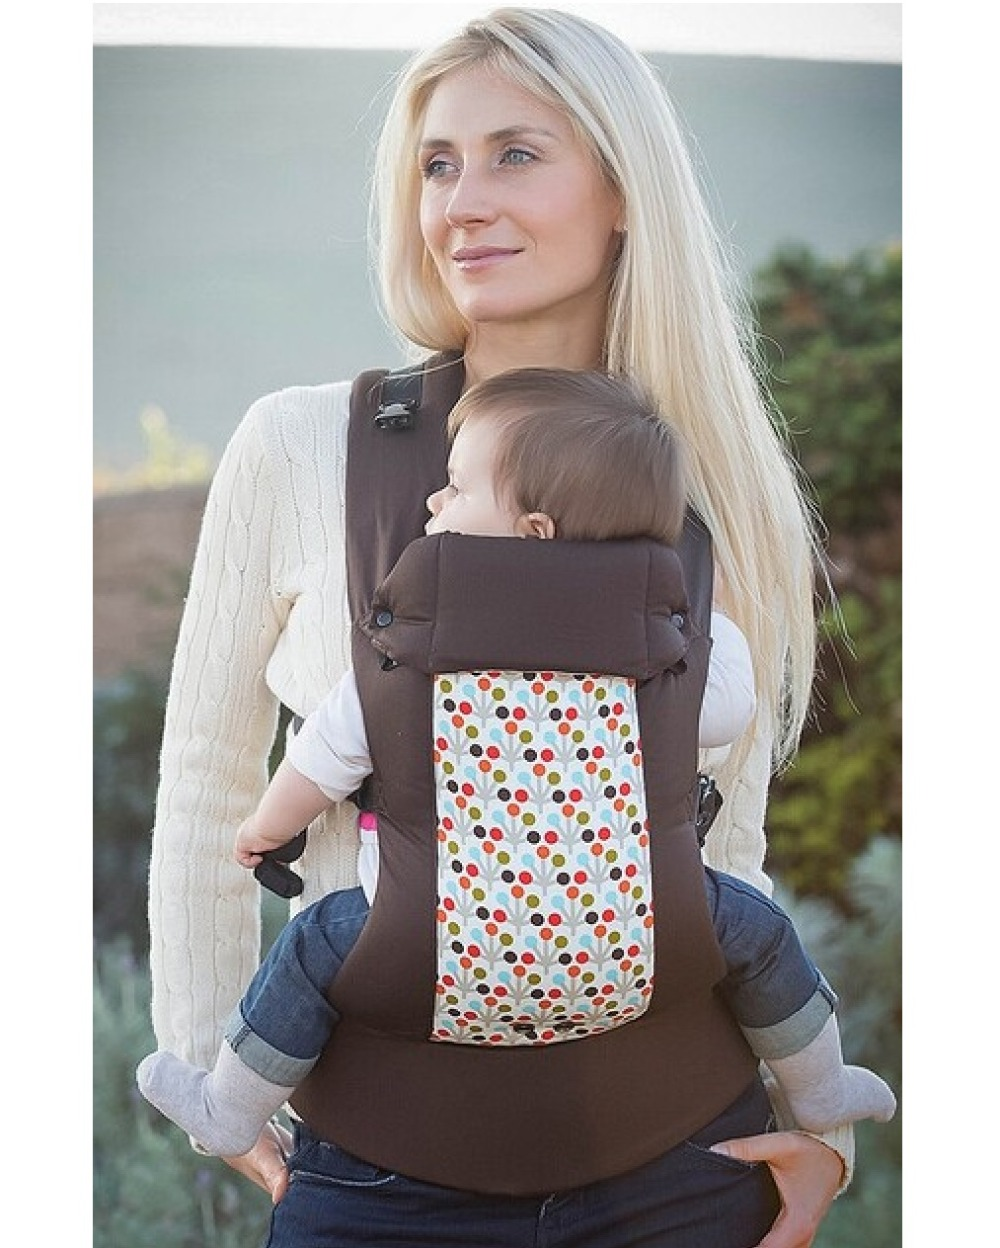 2015 Hot beco baby carrier 100% Cotton 2 colors canguru para bebe carrying children ergonomic 360 3-30m newborn